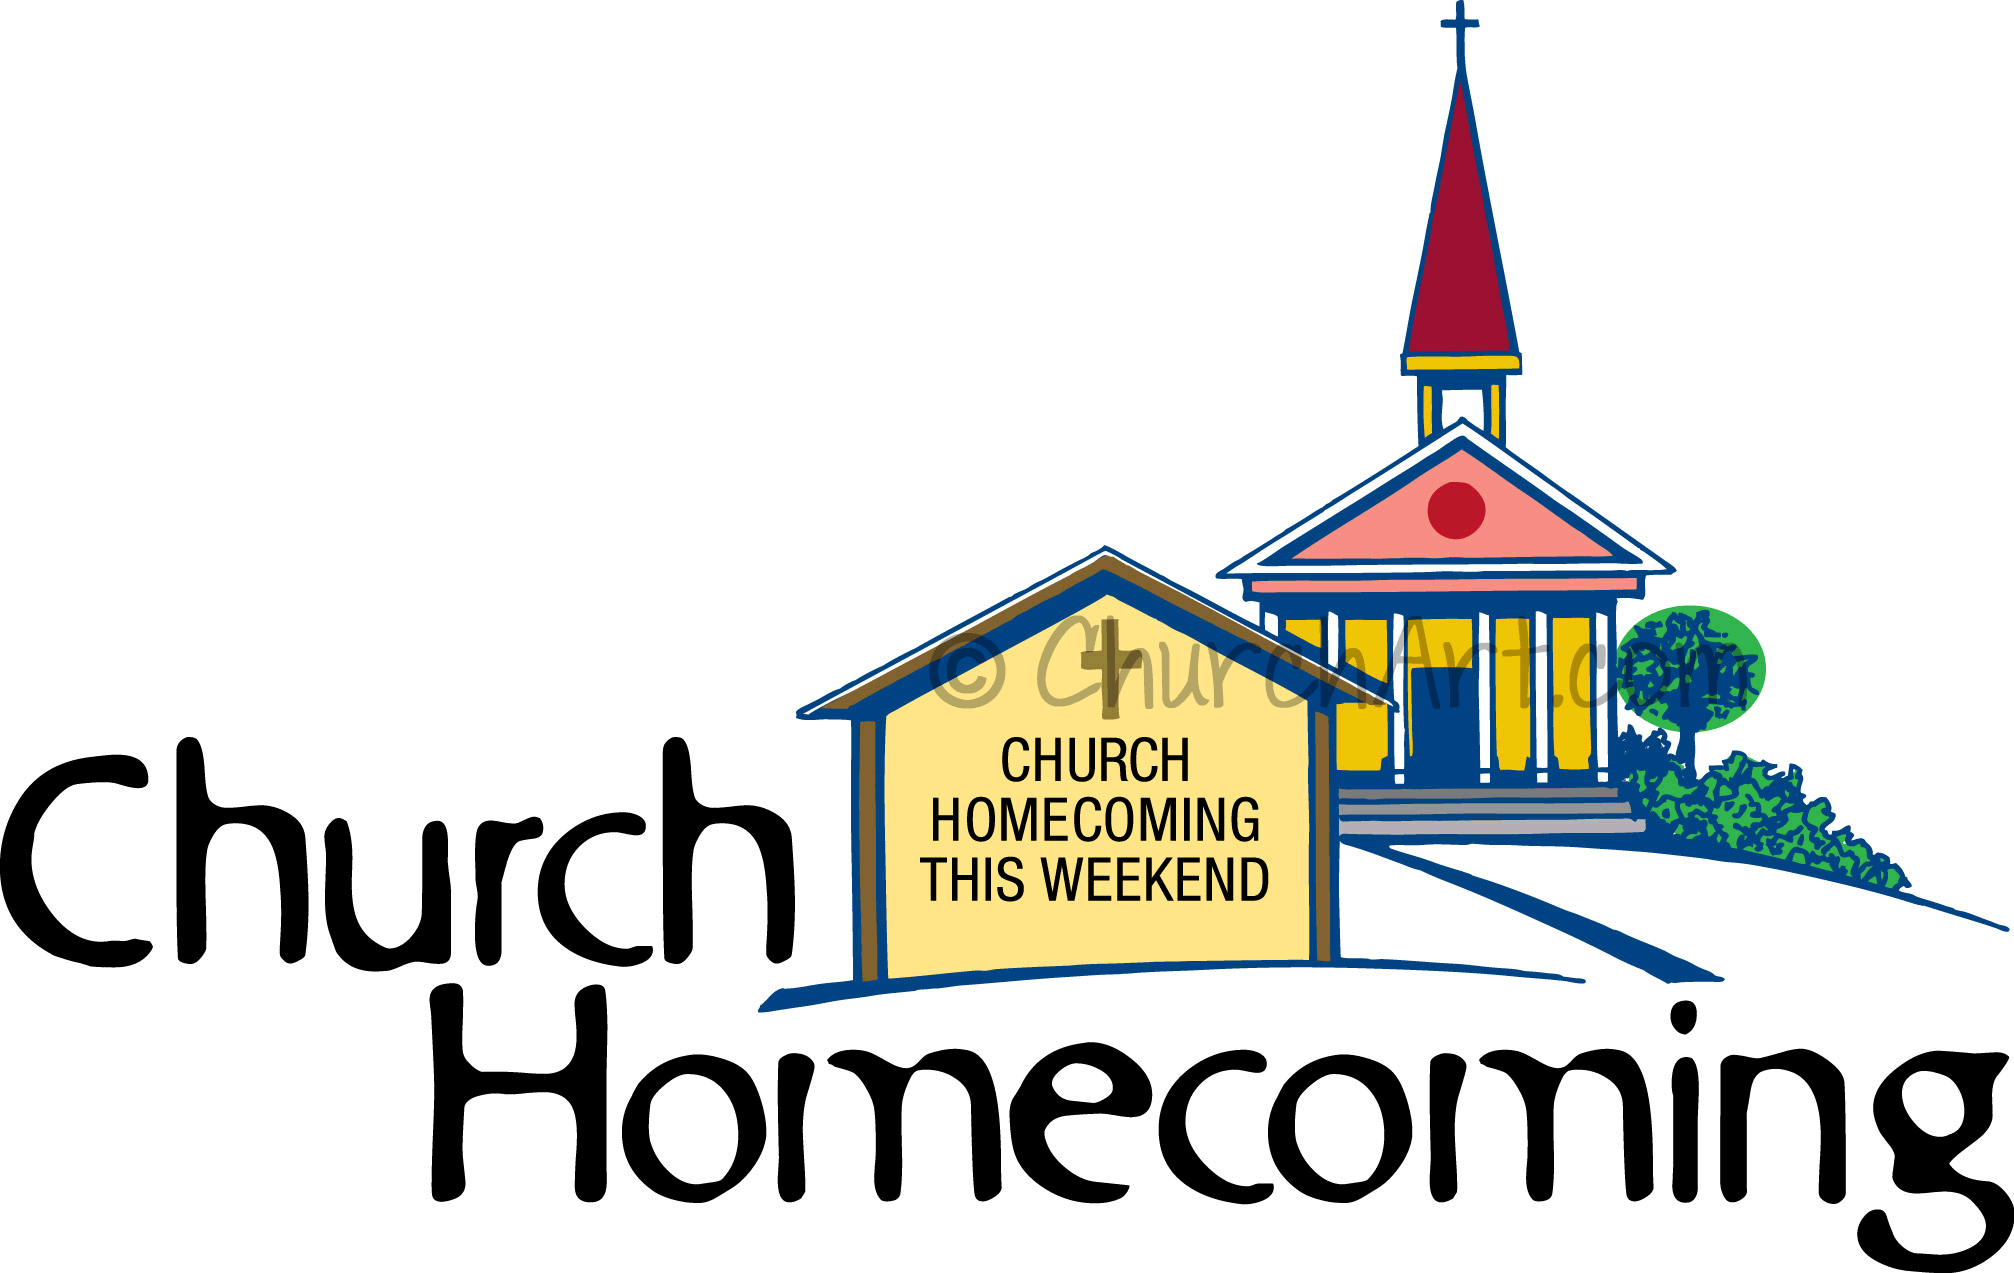 Church clip art image with steeple for Church Homecoming Sunday